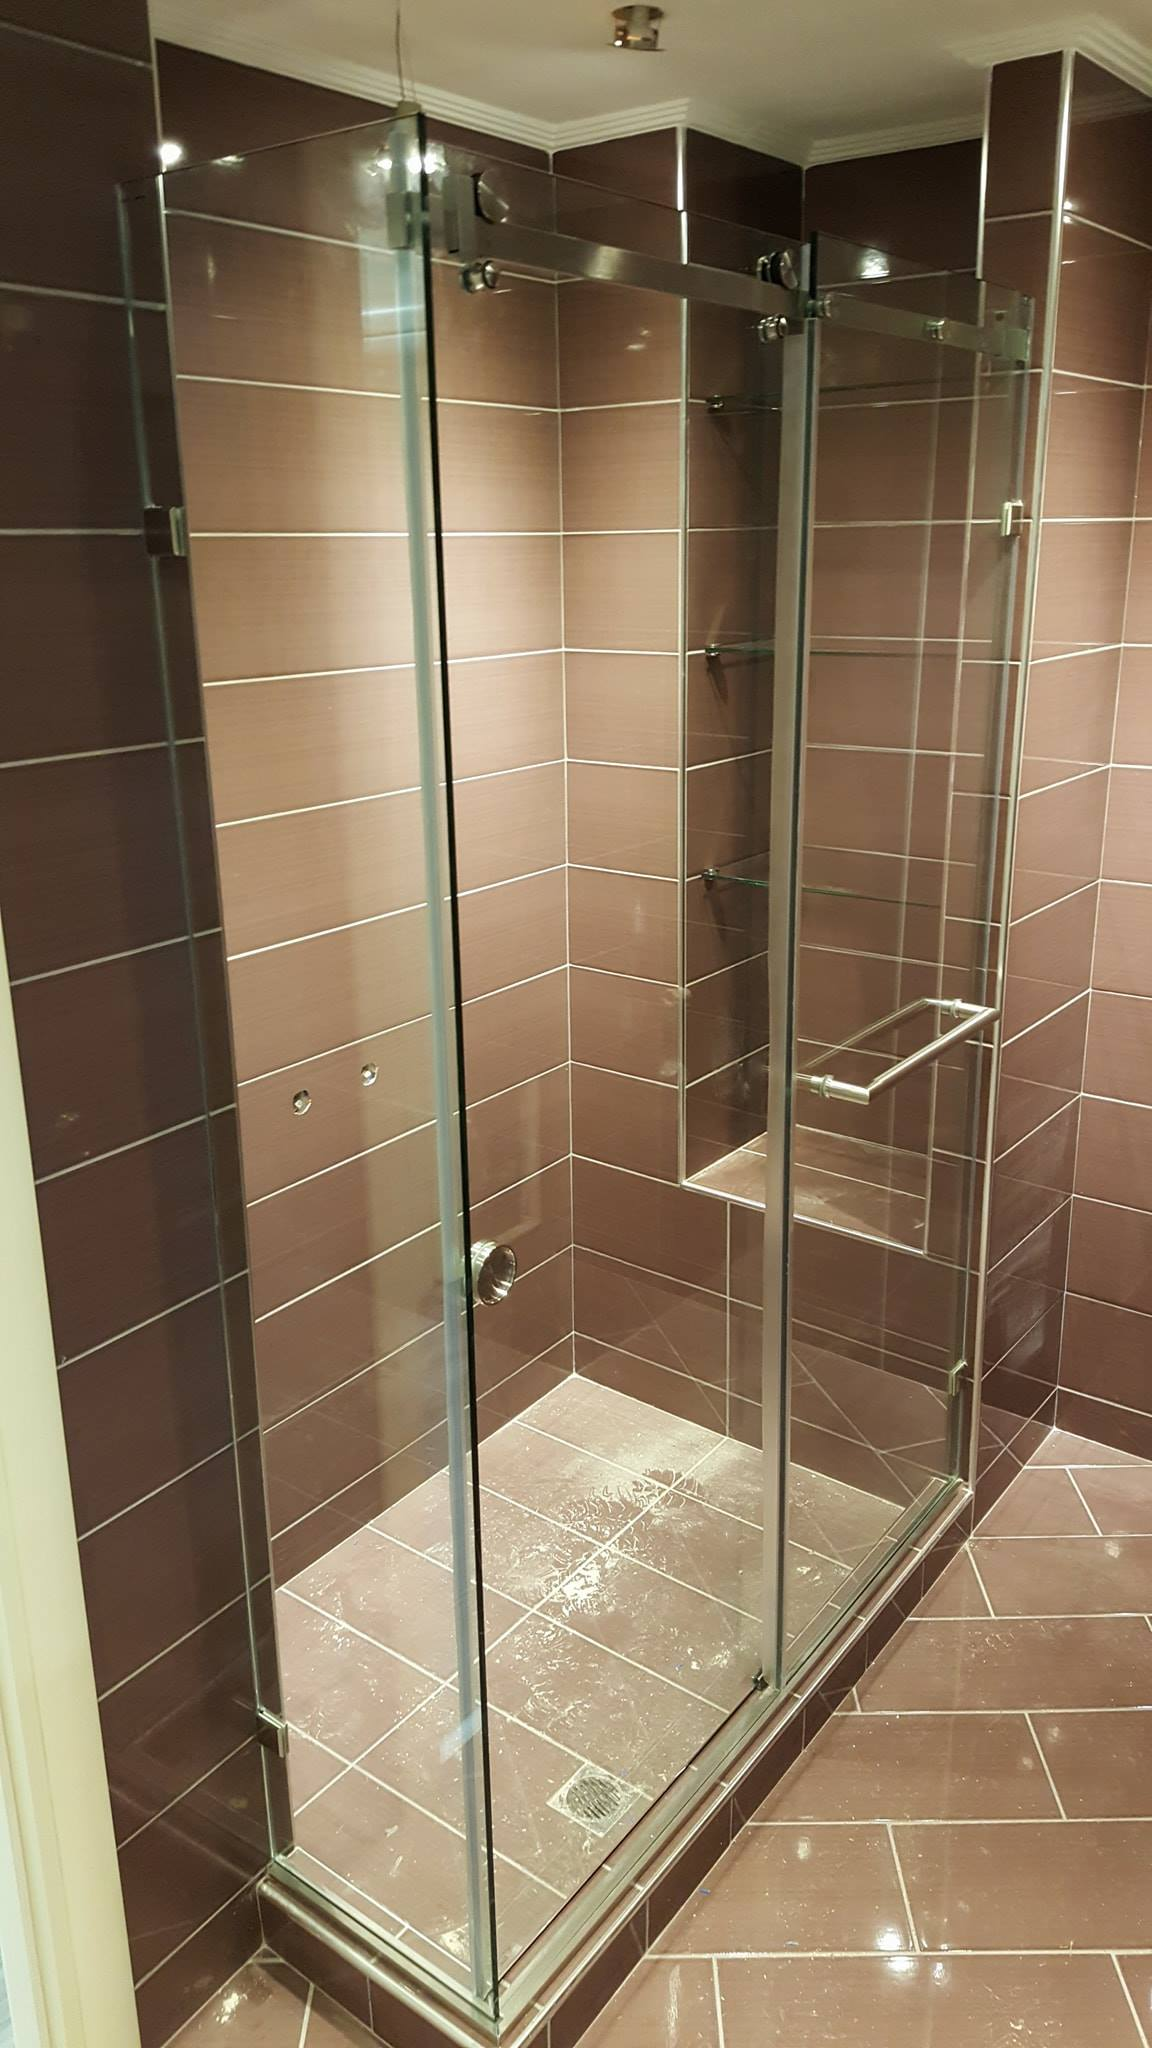 The Ss 40 Sliding Shower System Consisting Of A Stainless Steel Guide Rail And Rollers Low Height U Profile Just 15mm With